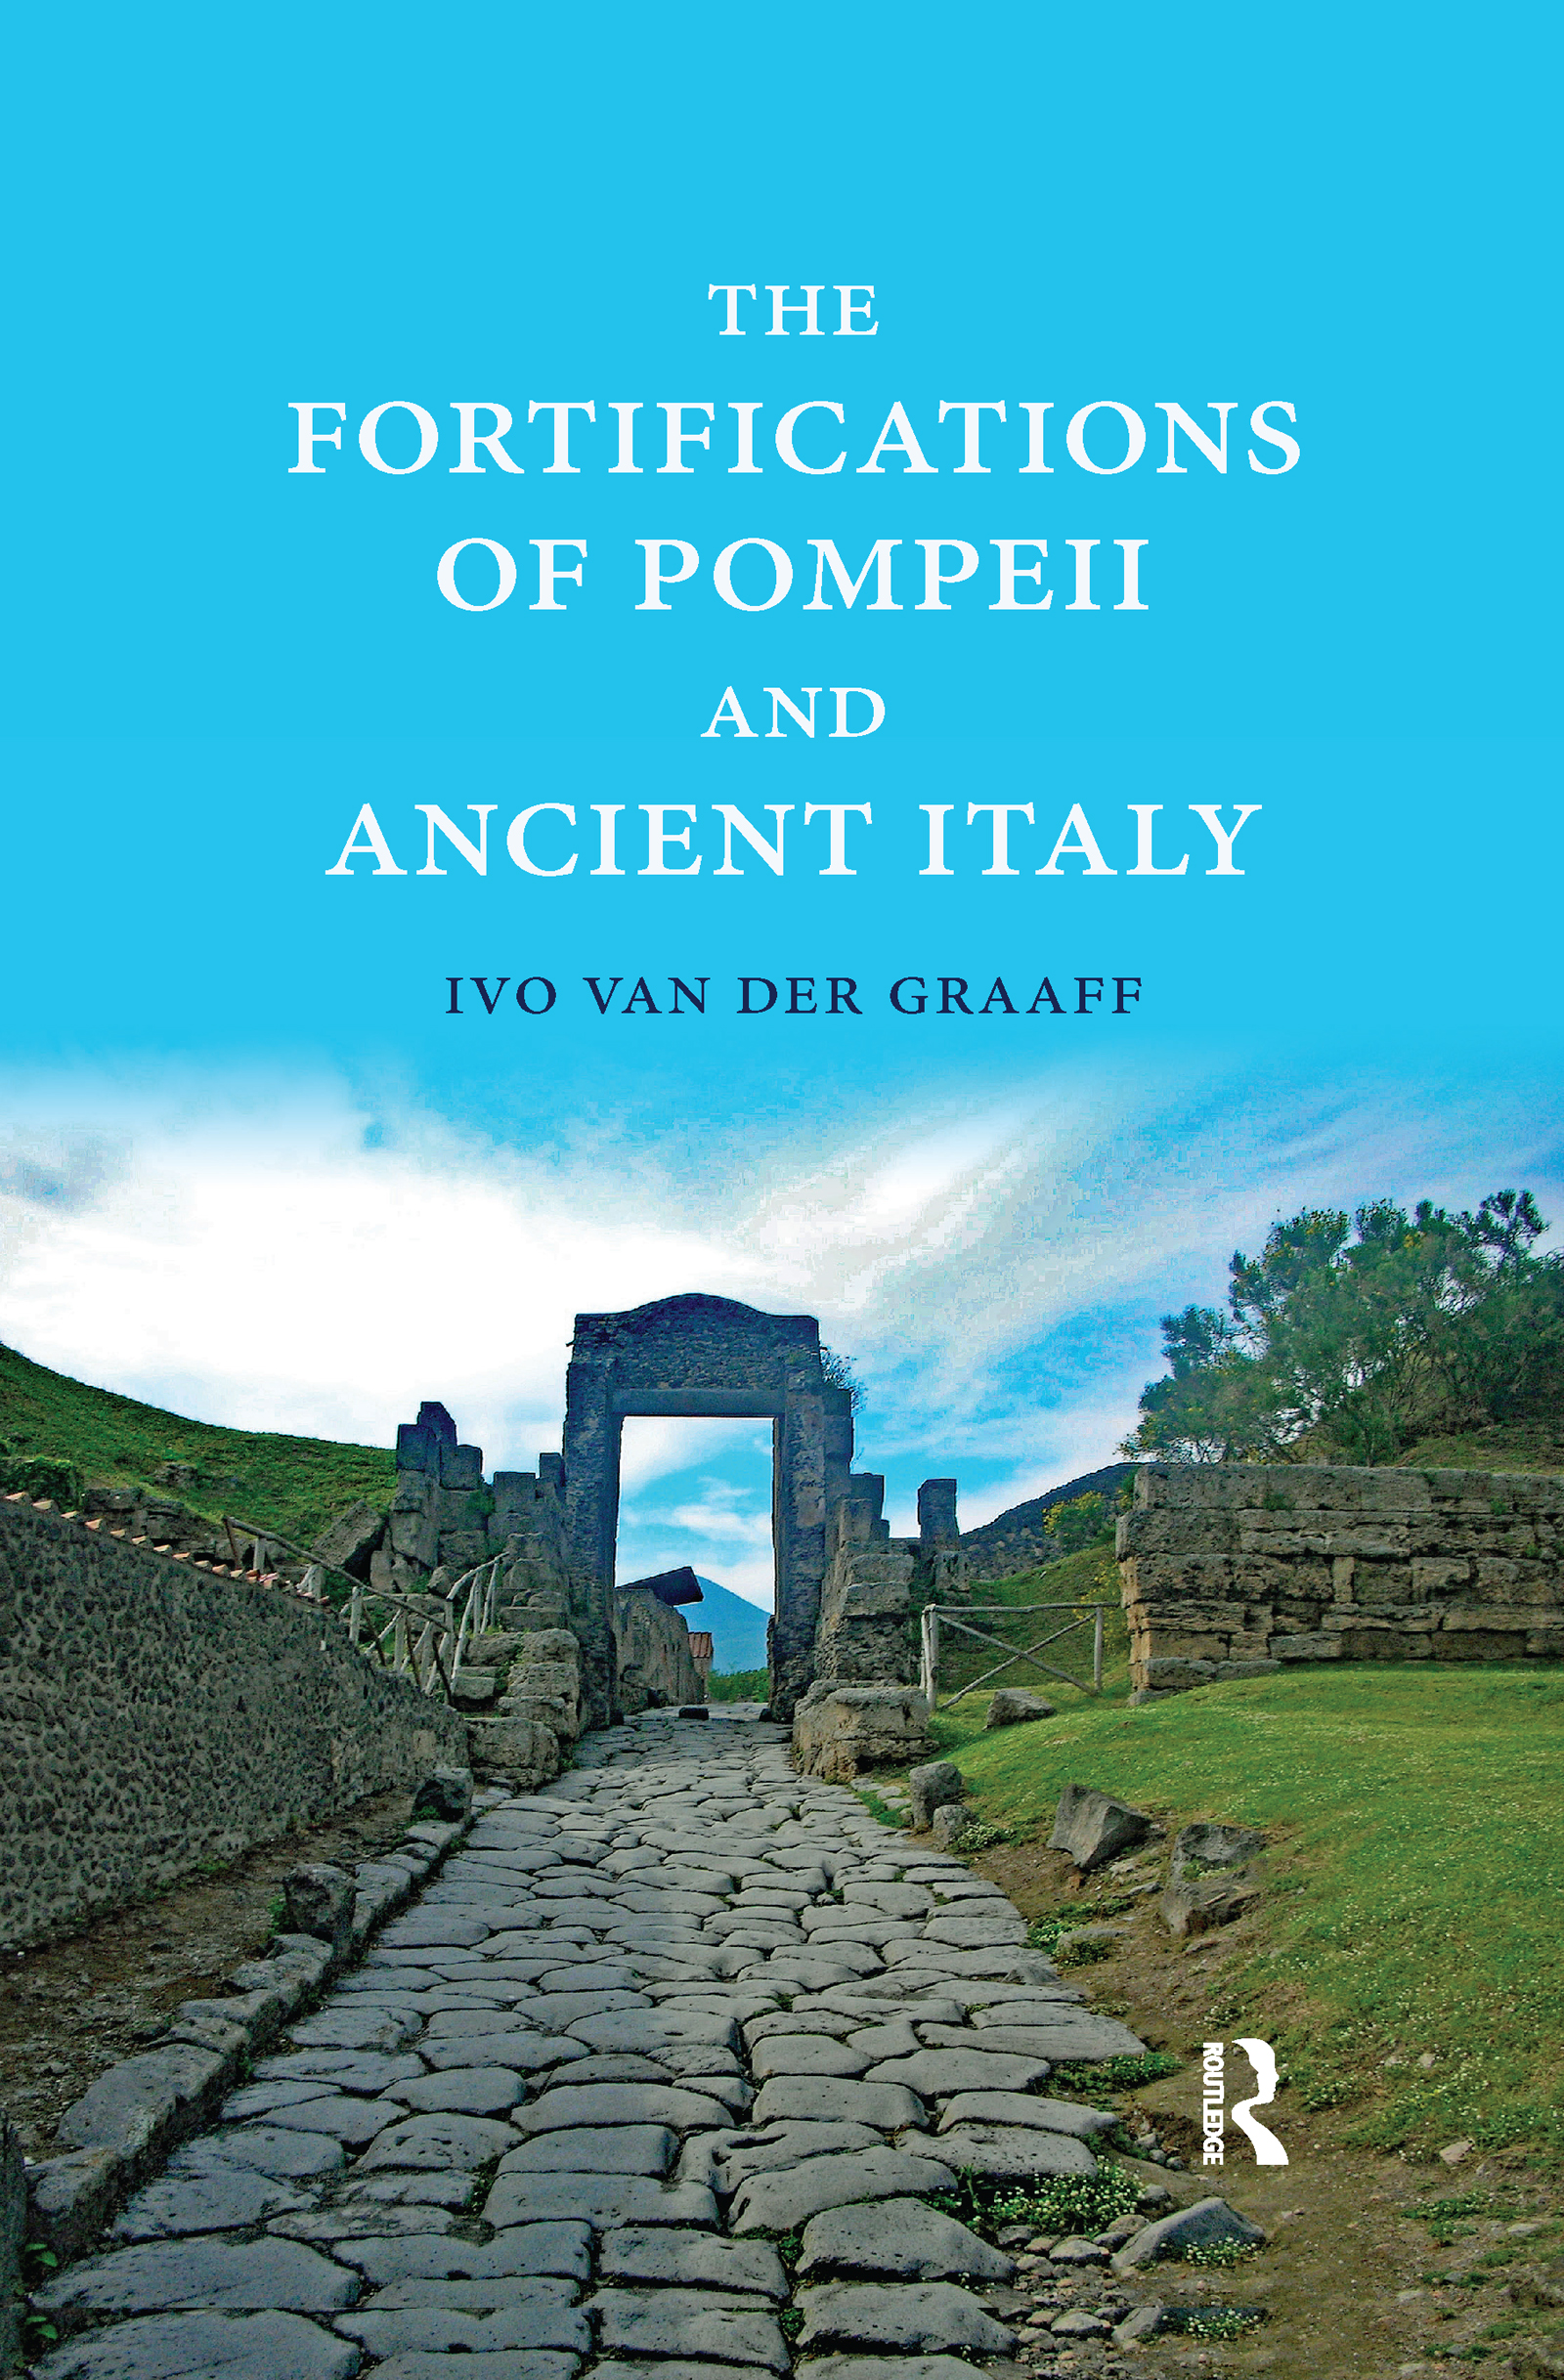 The Fortifications of Pompeii and Ancient Italy